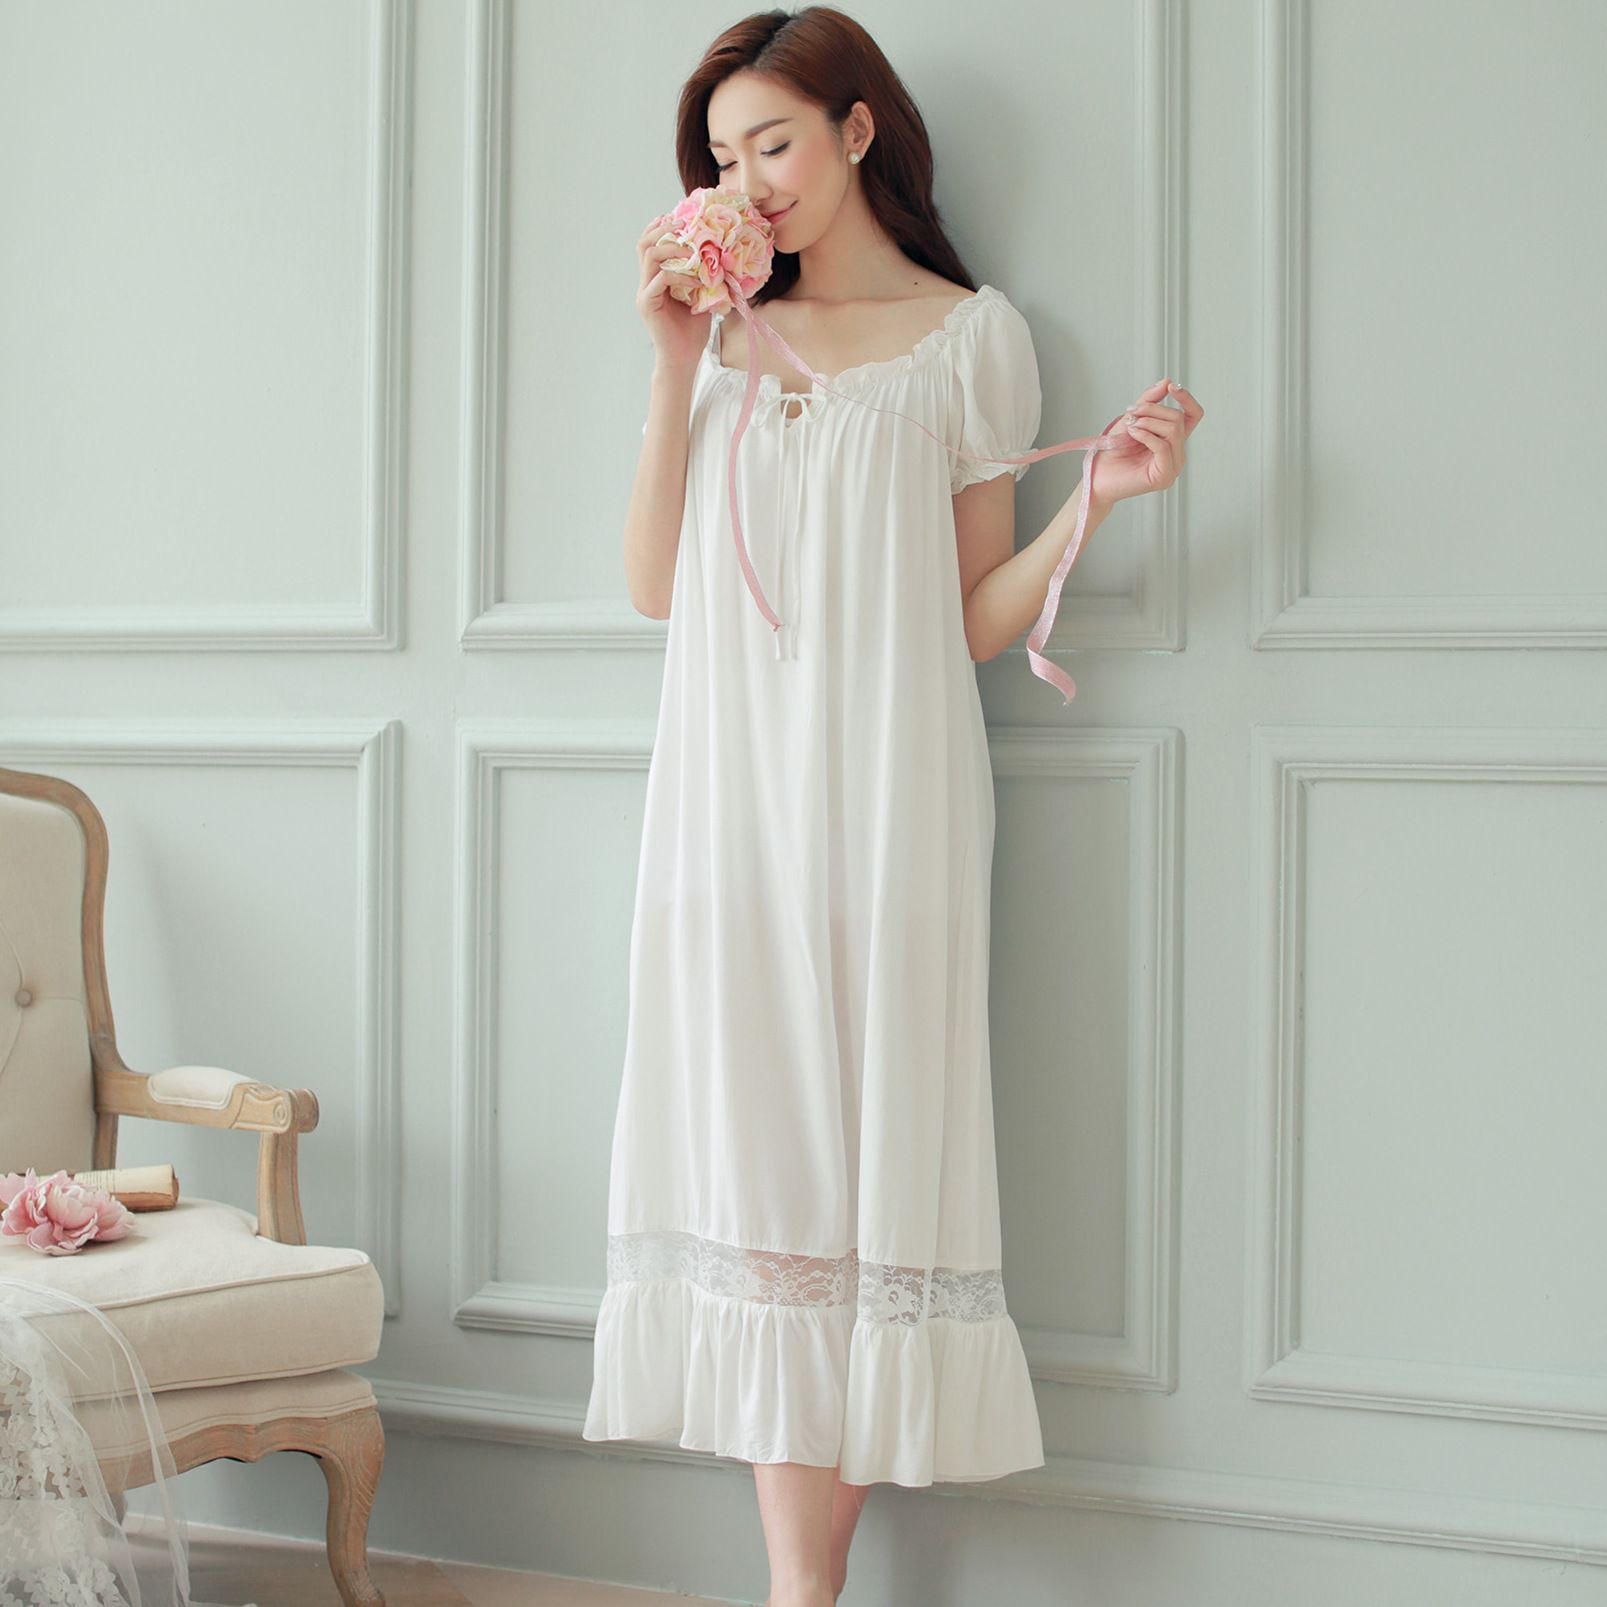 e66e6f35da Hot Womens Long Sleeping Dress White Nightgown Short Sleeve Summer  Nightdress Elegant Vintage Nightgowns Home Dress For Sleeping-in Nightgowns    Sleepshirts ...